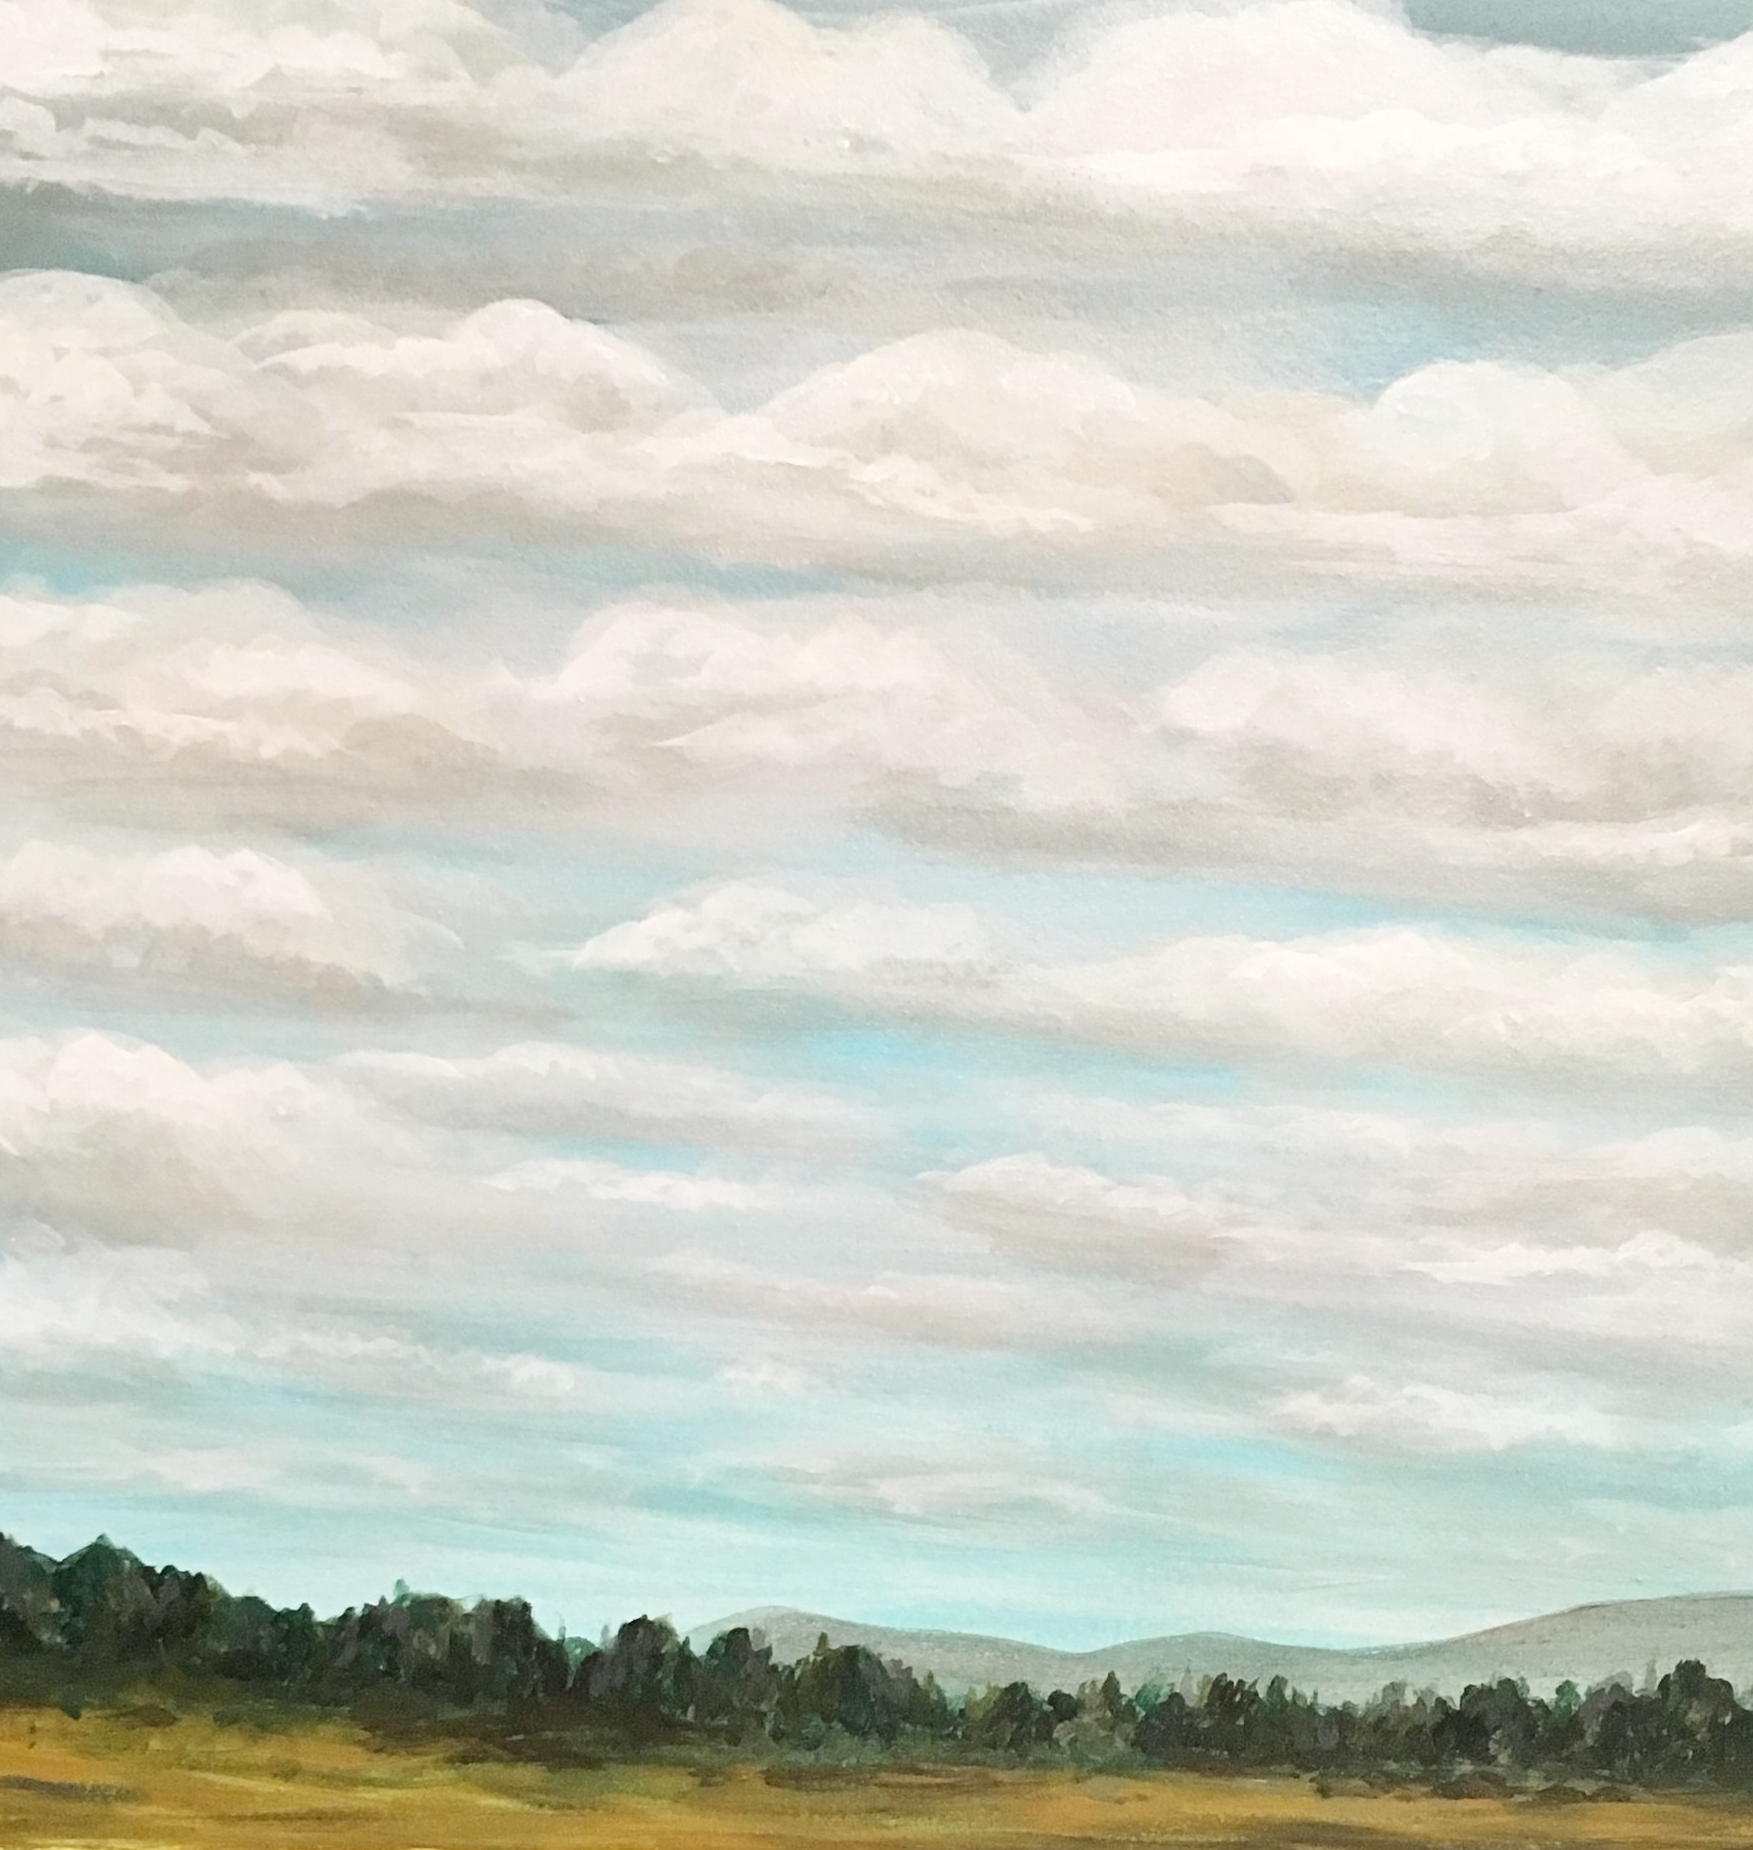 """""""The Foothills on a Cloudy Day""""  by Sarah Mandell (January 27th, 2018)"""